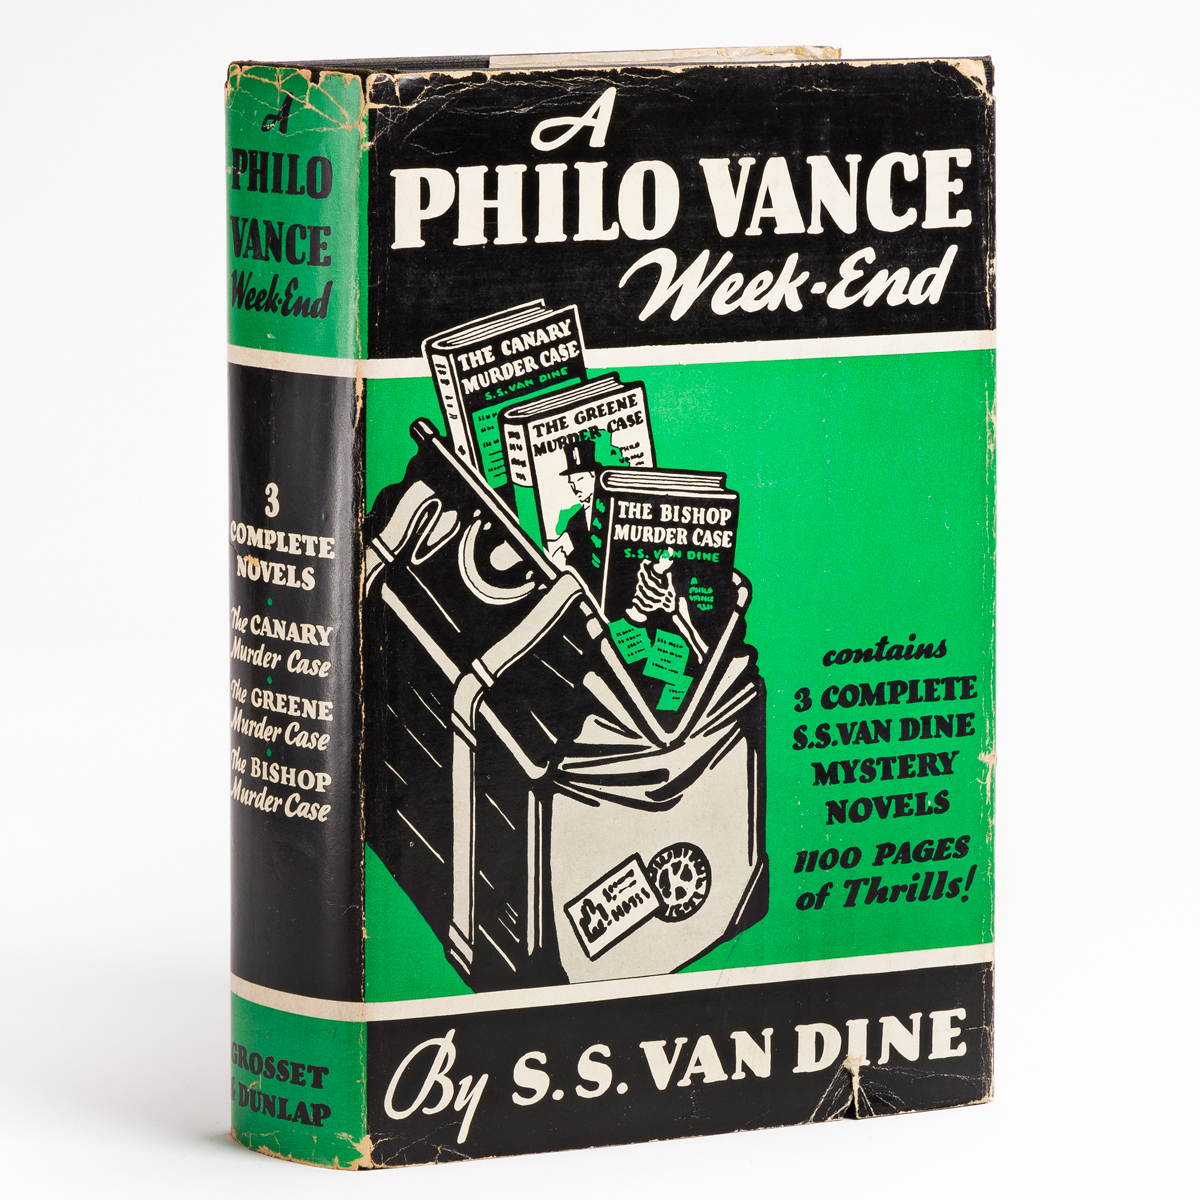 VAN DINE, S.S. A Philo Vance Week-End.